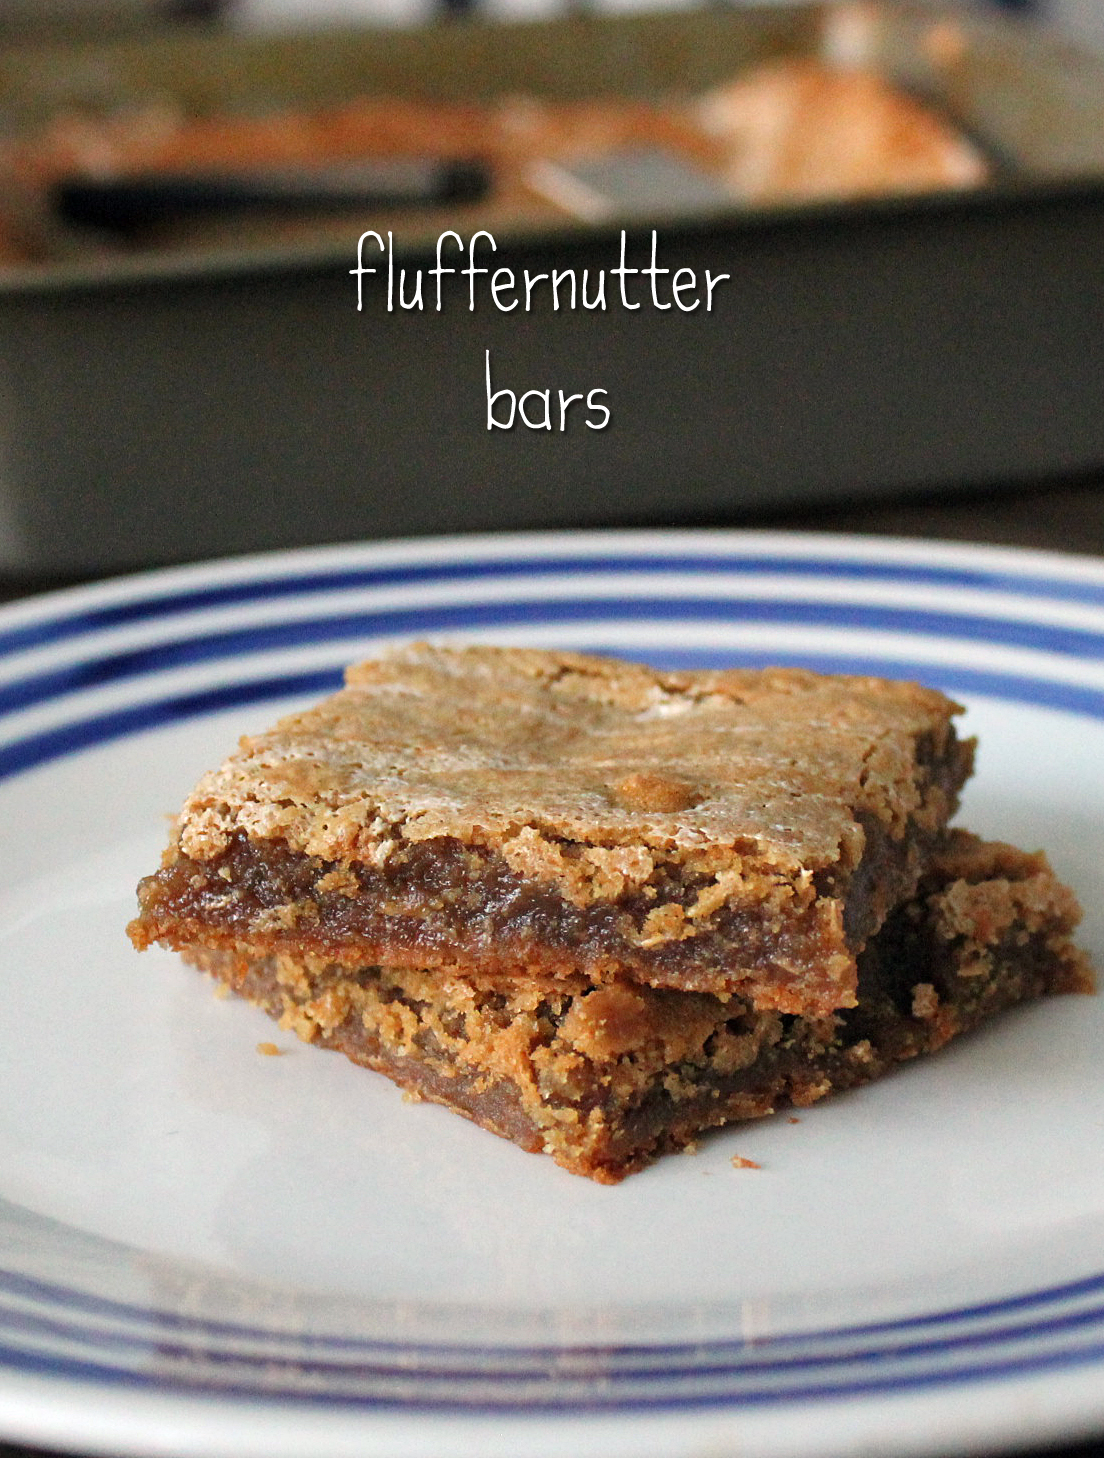 Fluffernutter Bars by freshfromthe.com